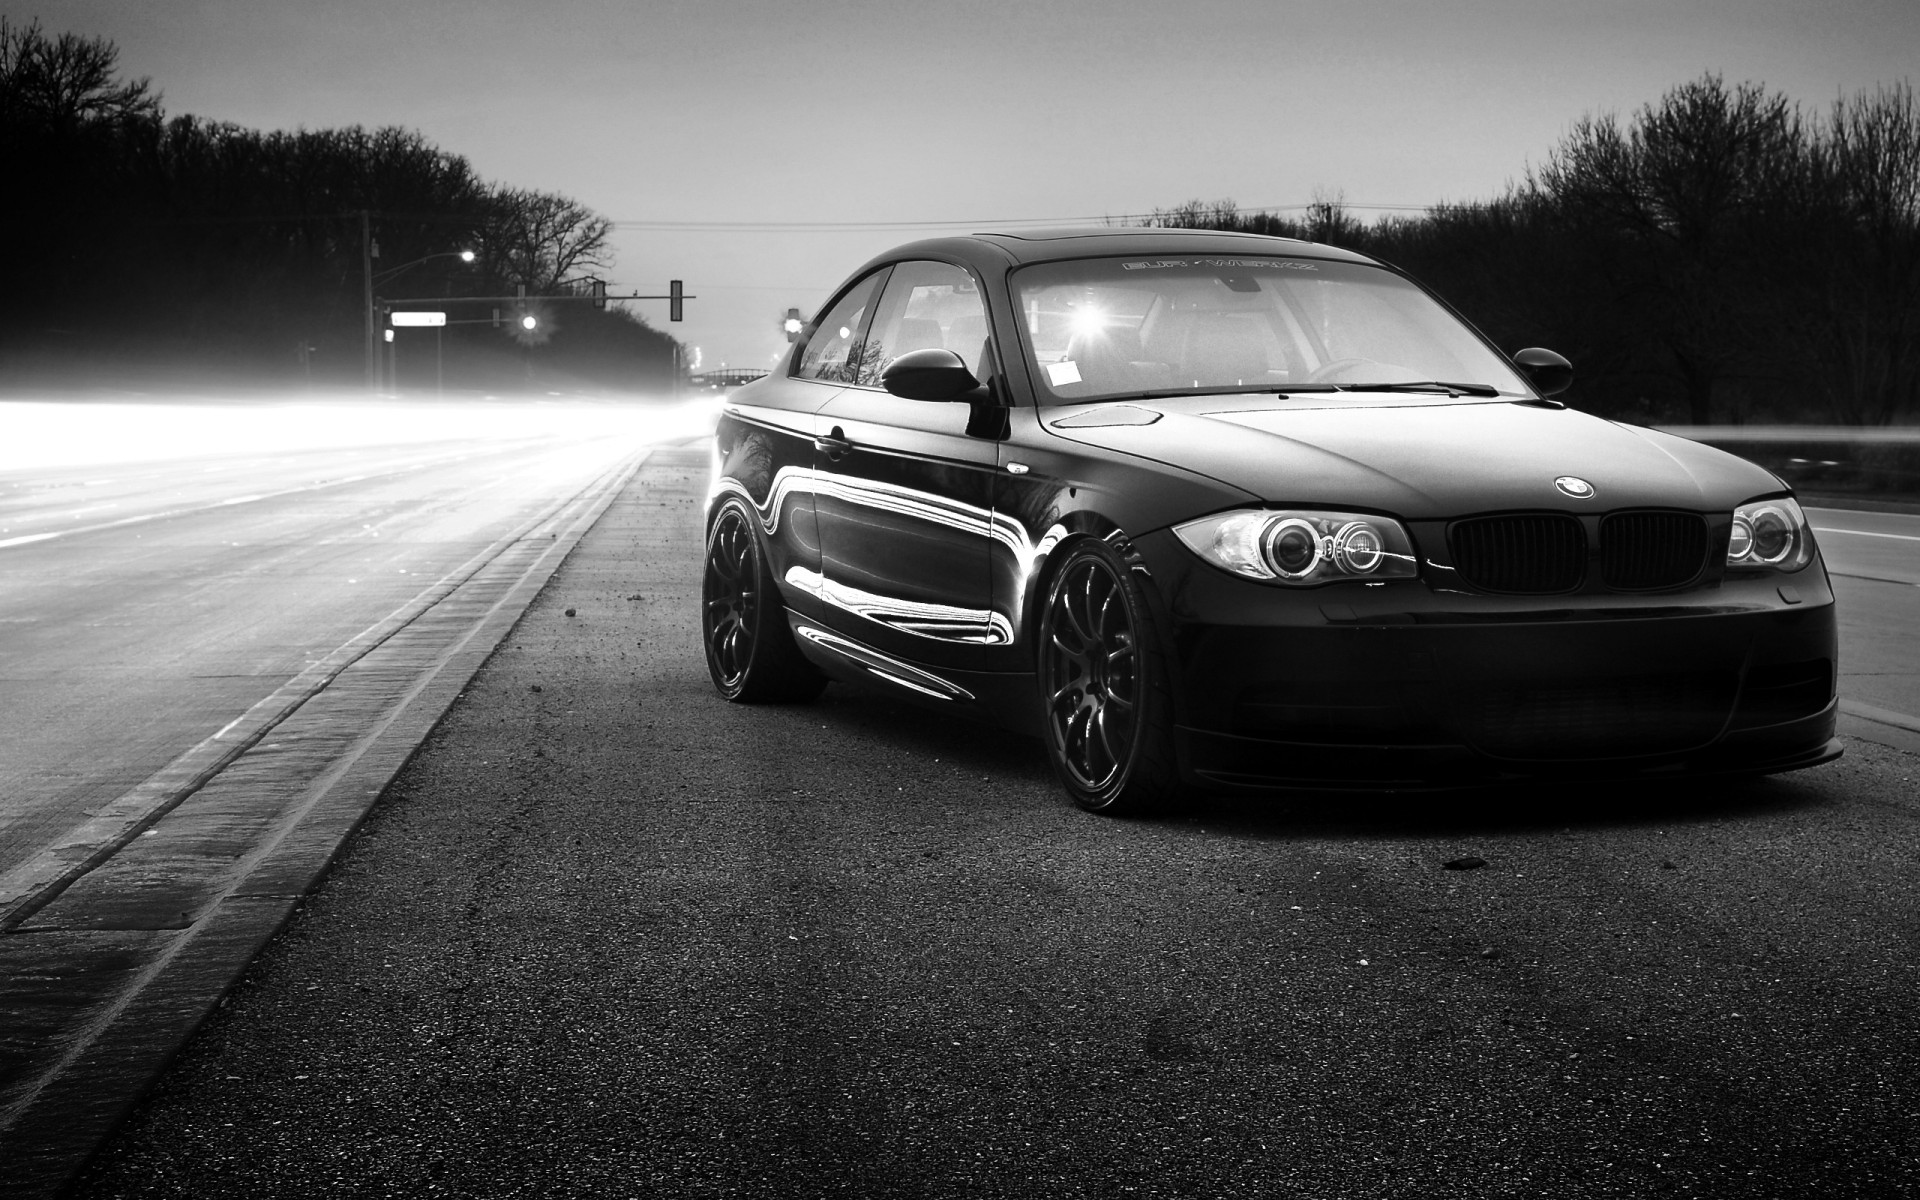 Black BMW 135i on the road, black and white wallpaper